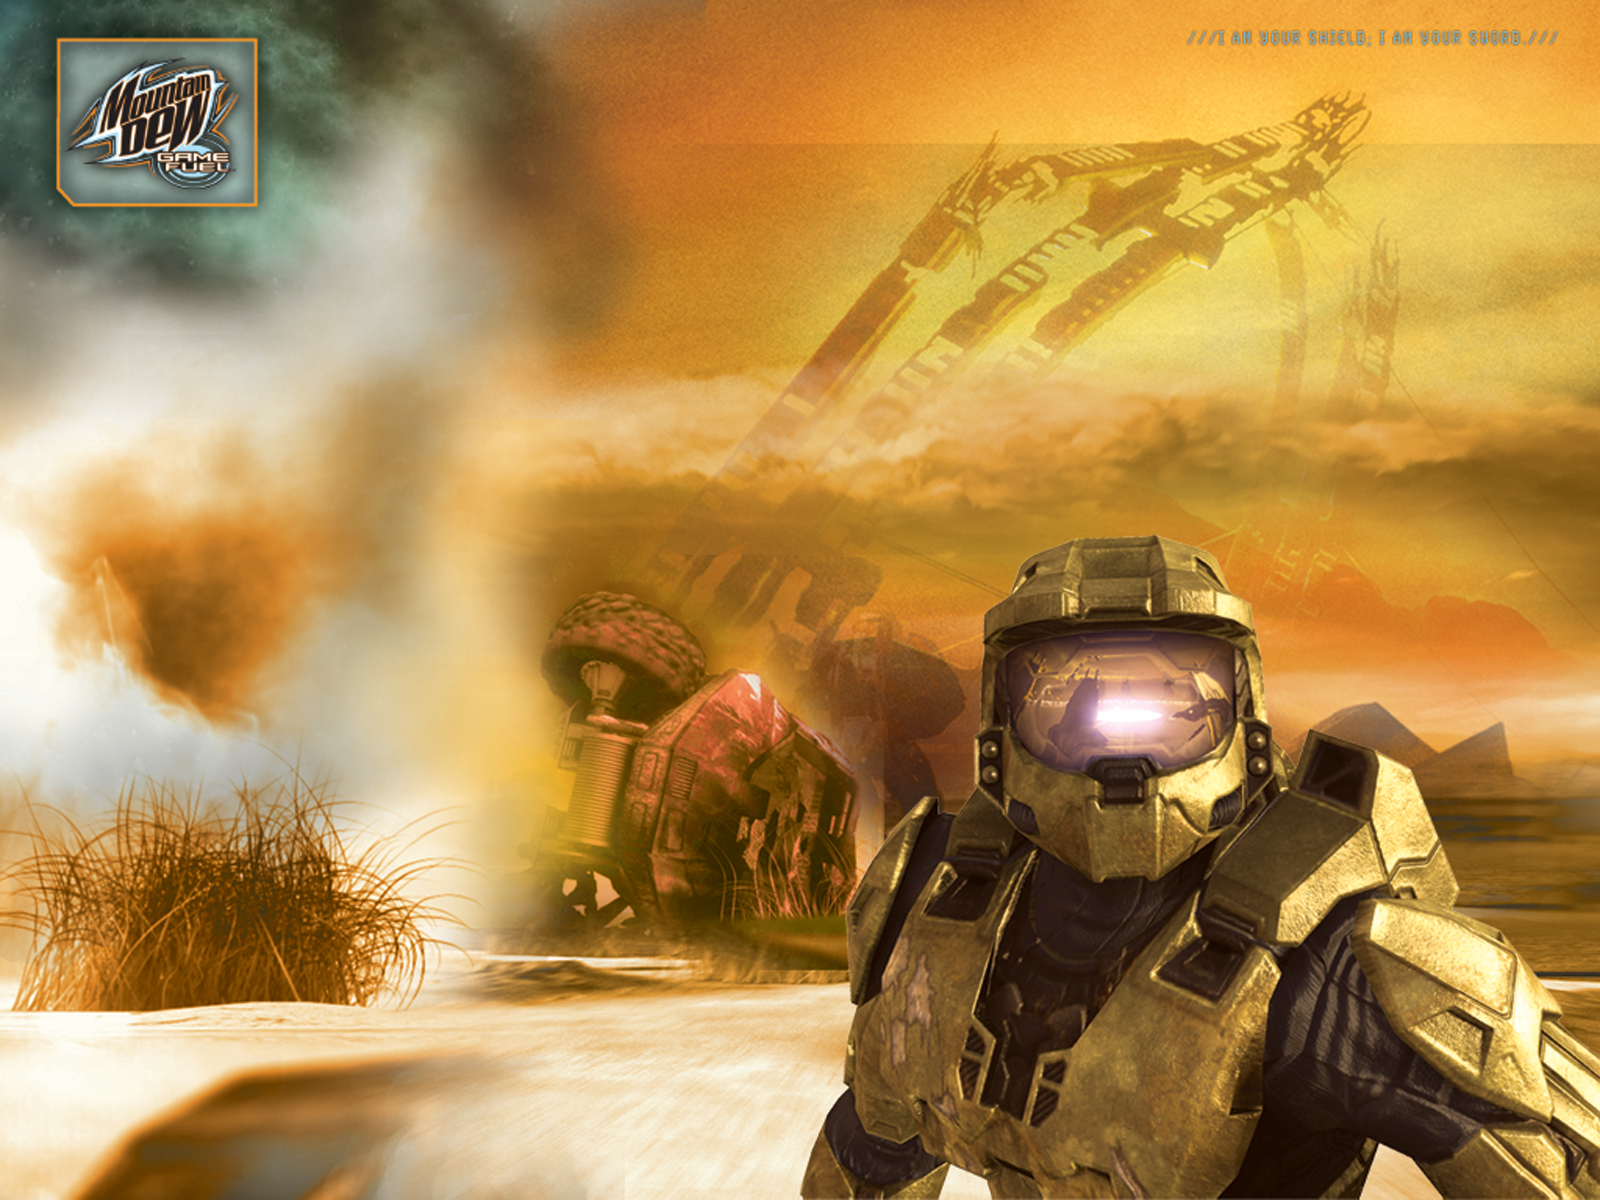 Halo Wallpaper Hd Mountain Dew Game Fuel Images Mt Dew Game Fuel Halo 3 Wp